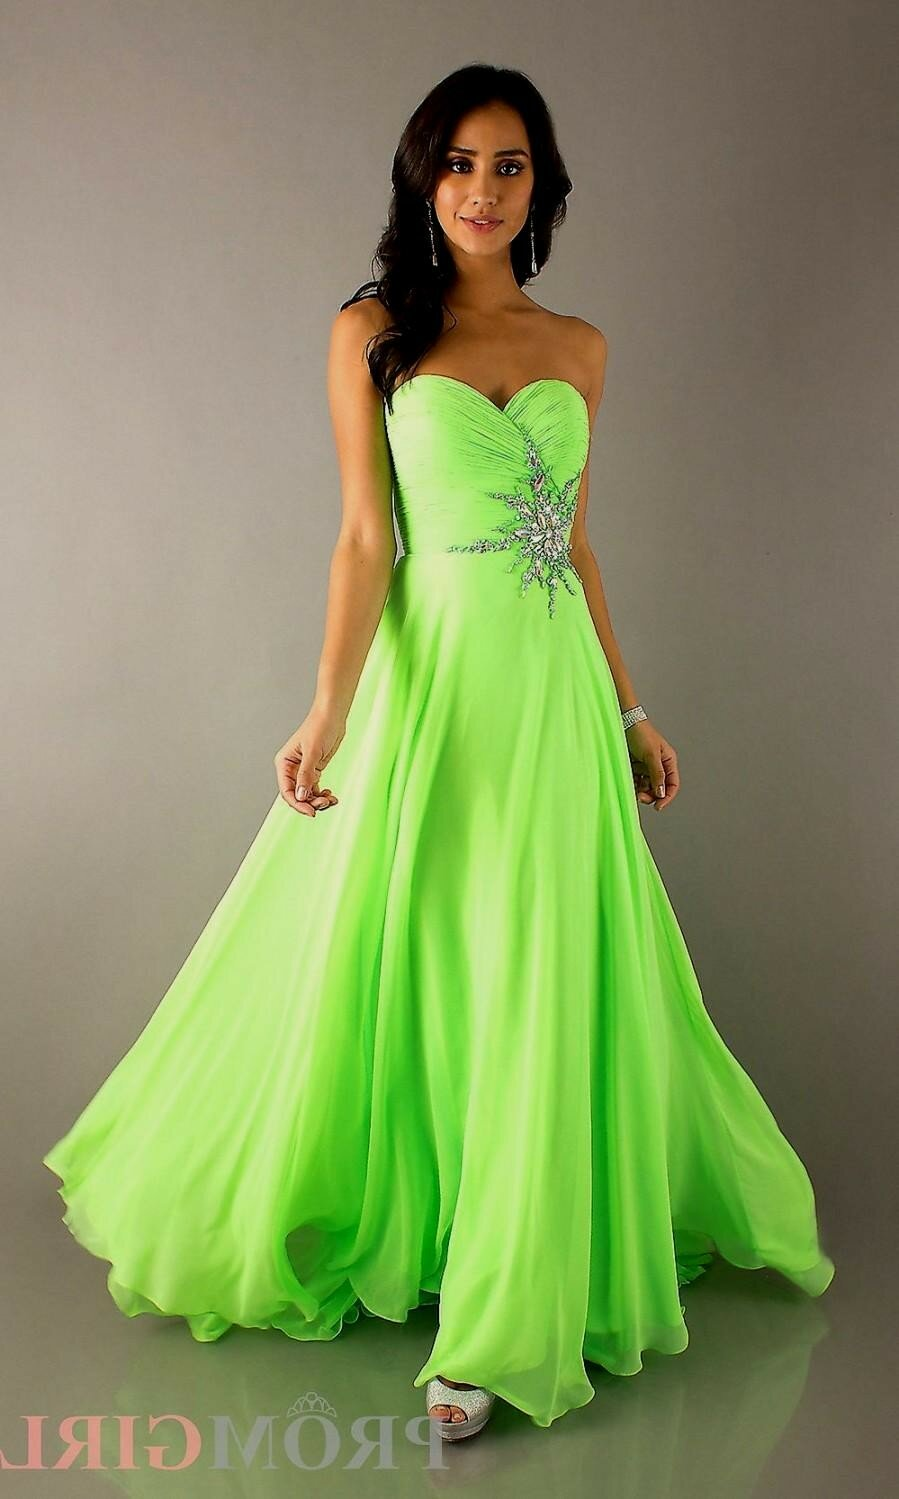 white and lime green wedding dresses pictures ideas